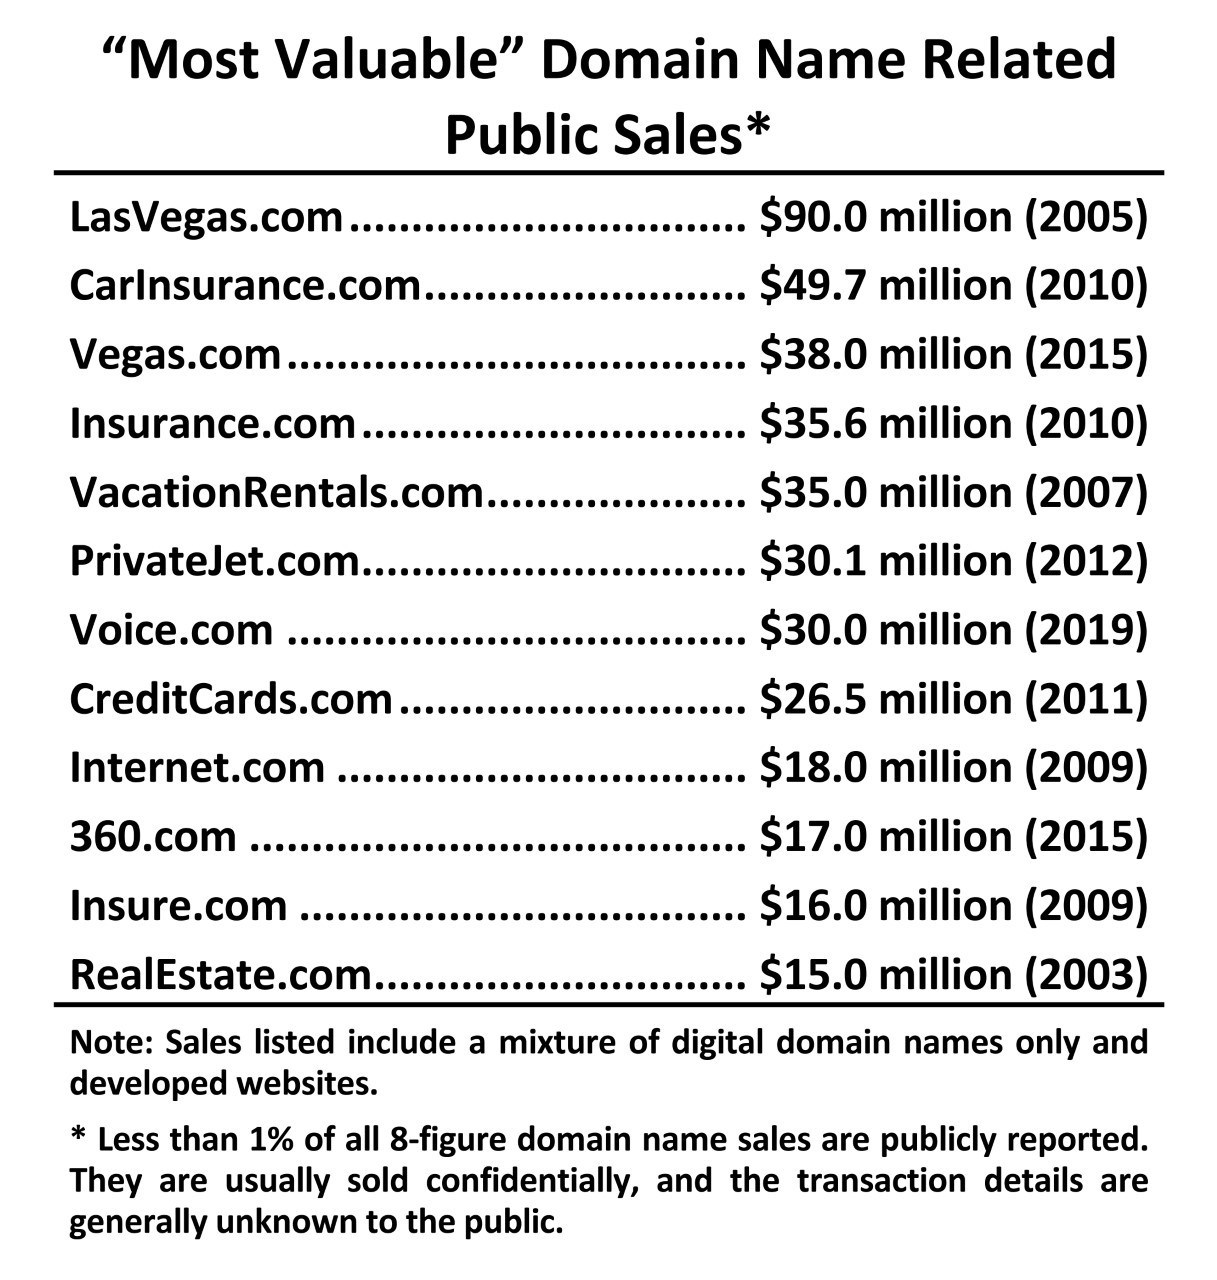 Most Valuable Domain Name Sales